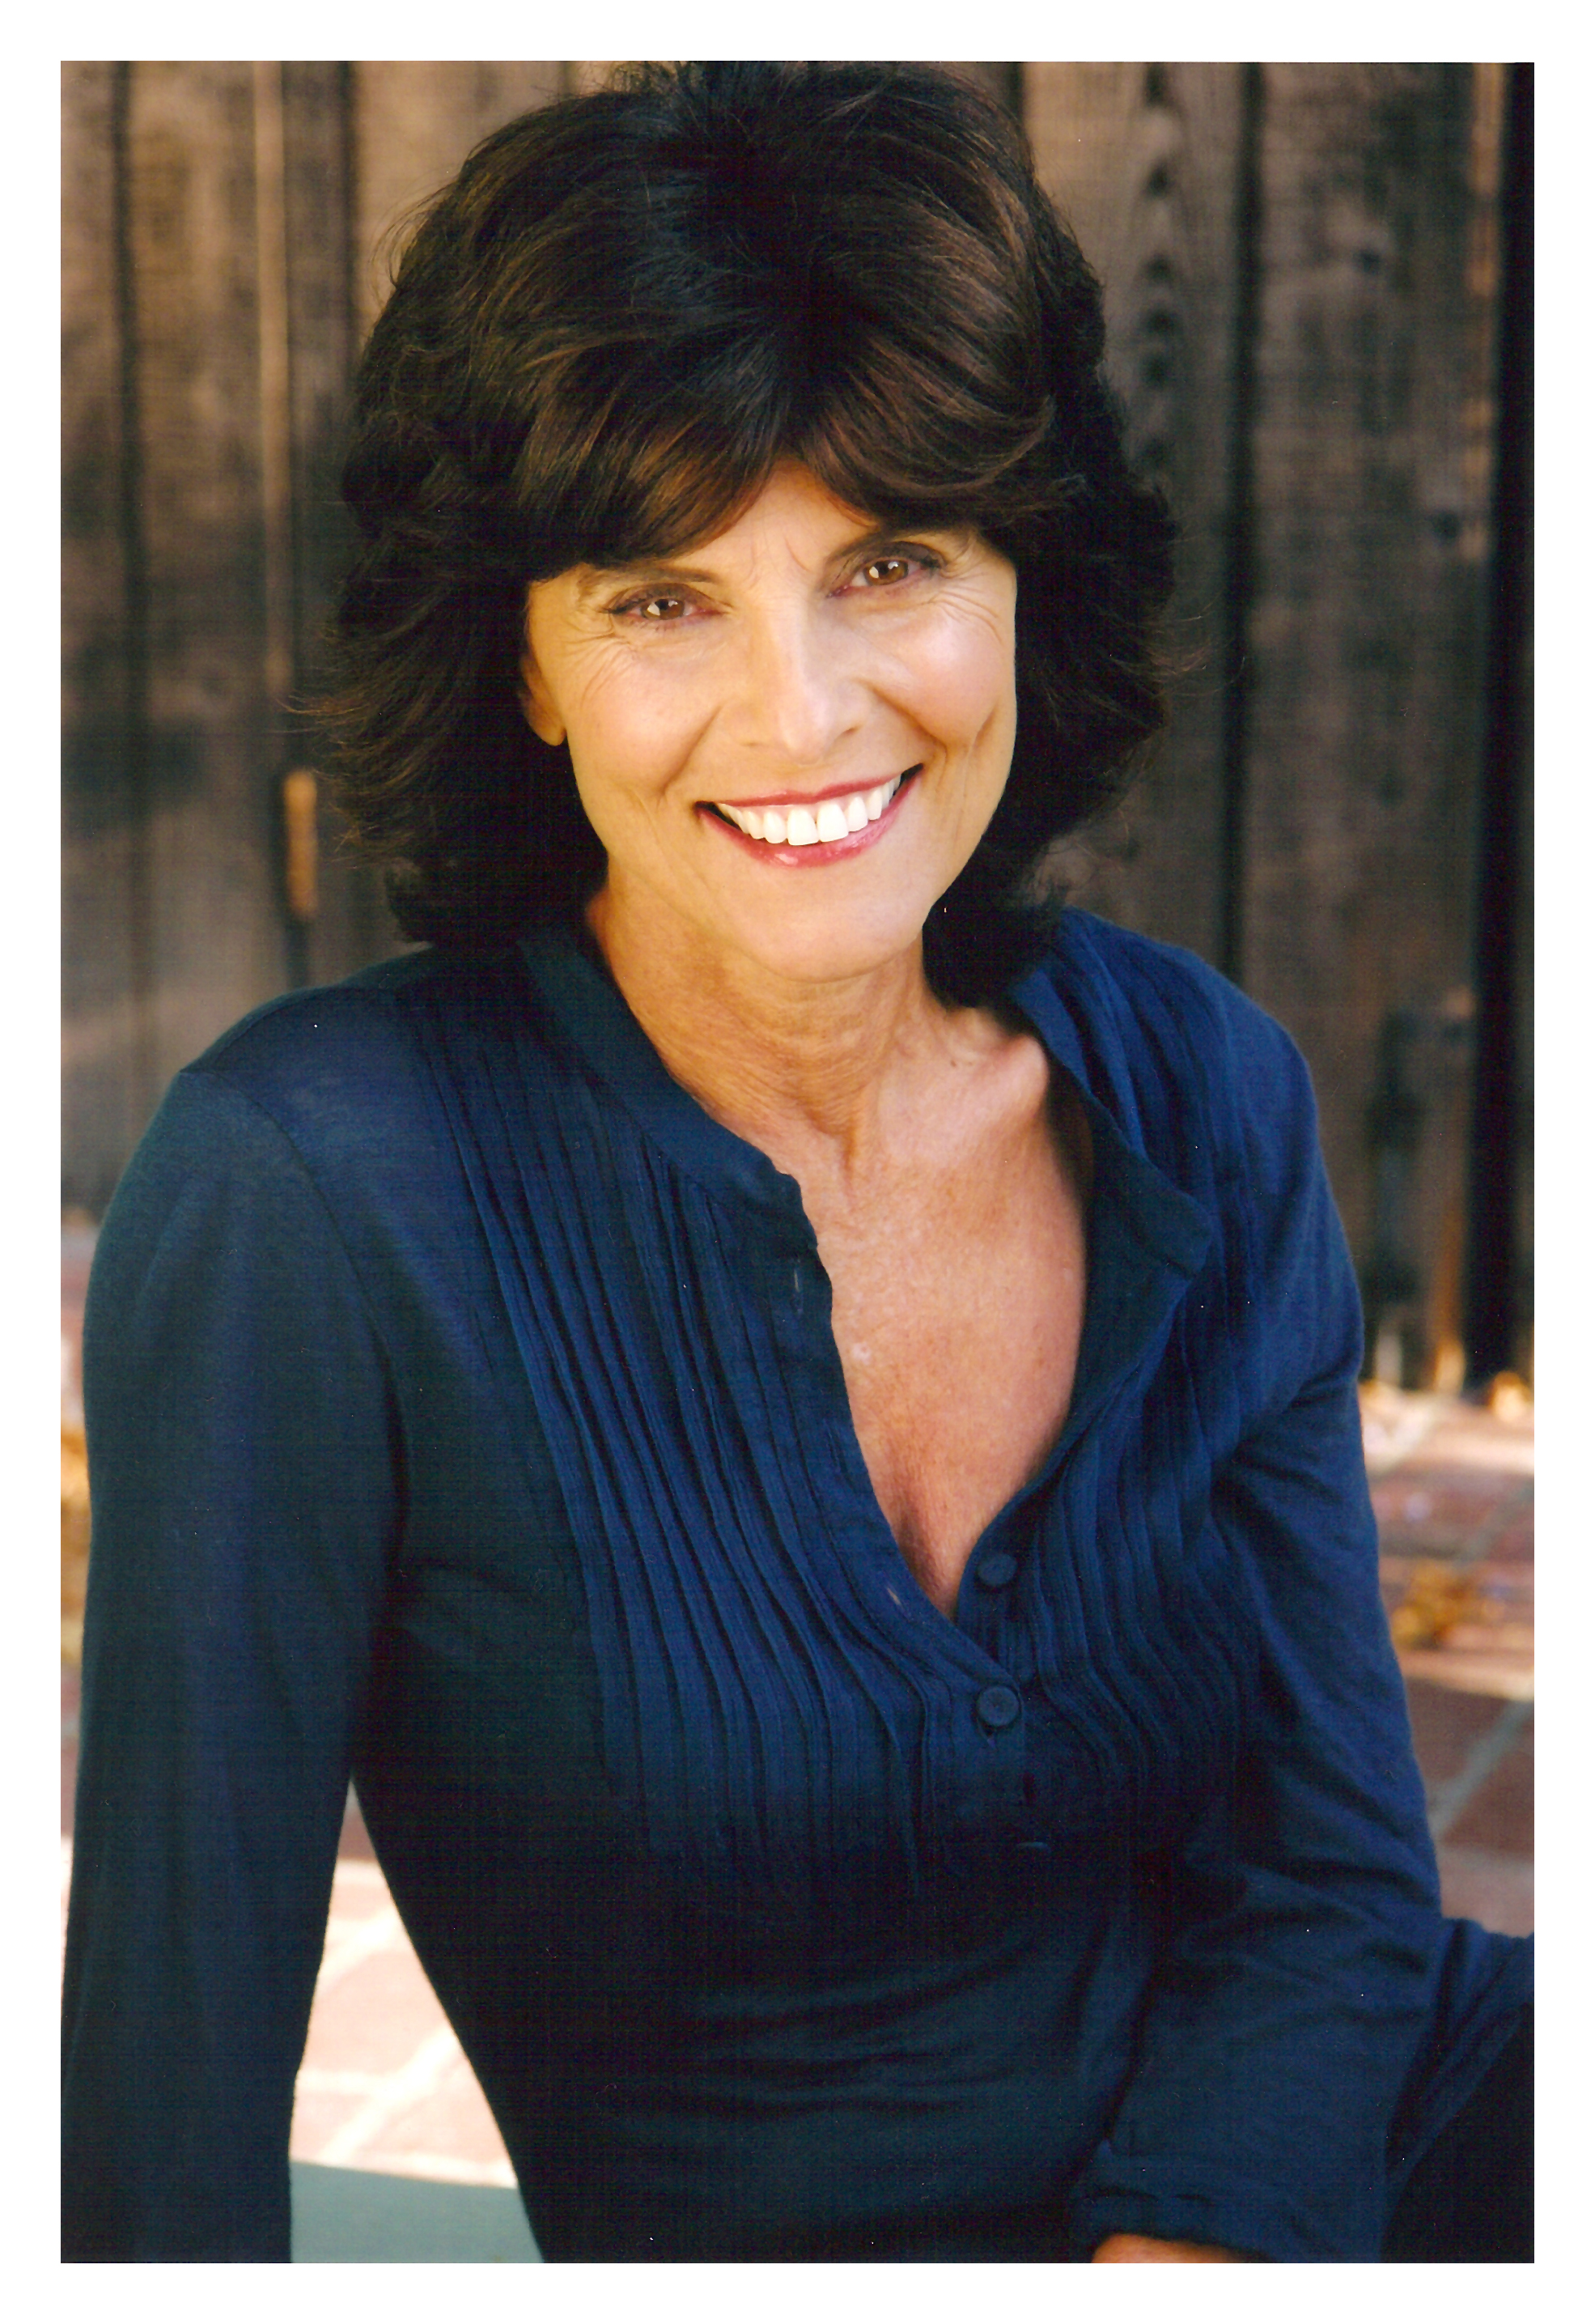 An interview with Adrienne Barbeau ...